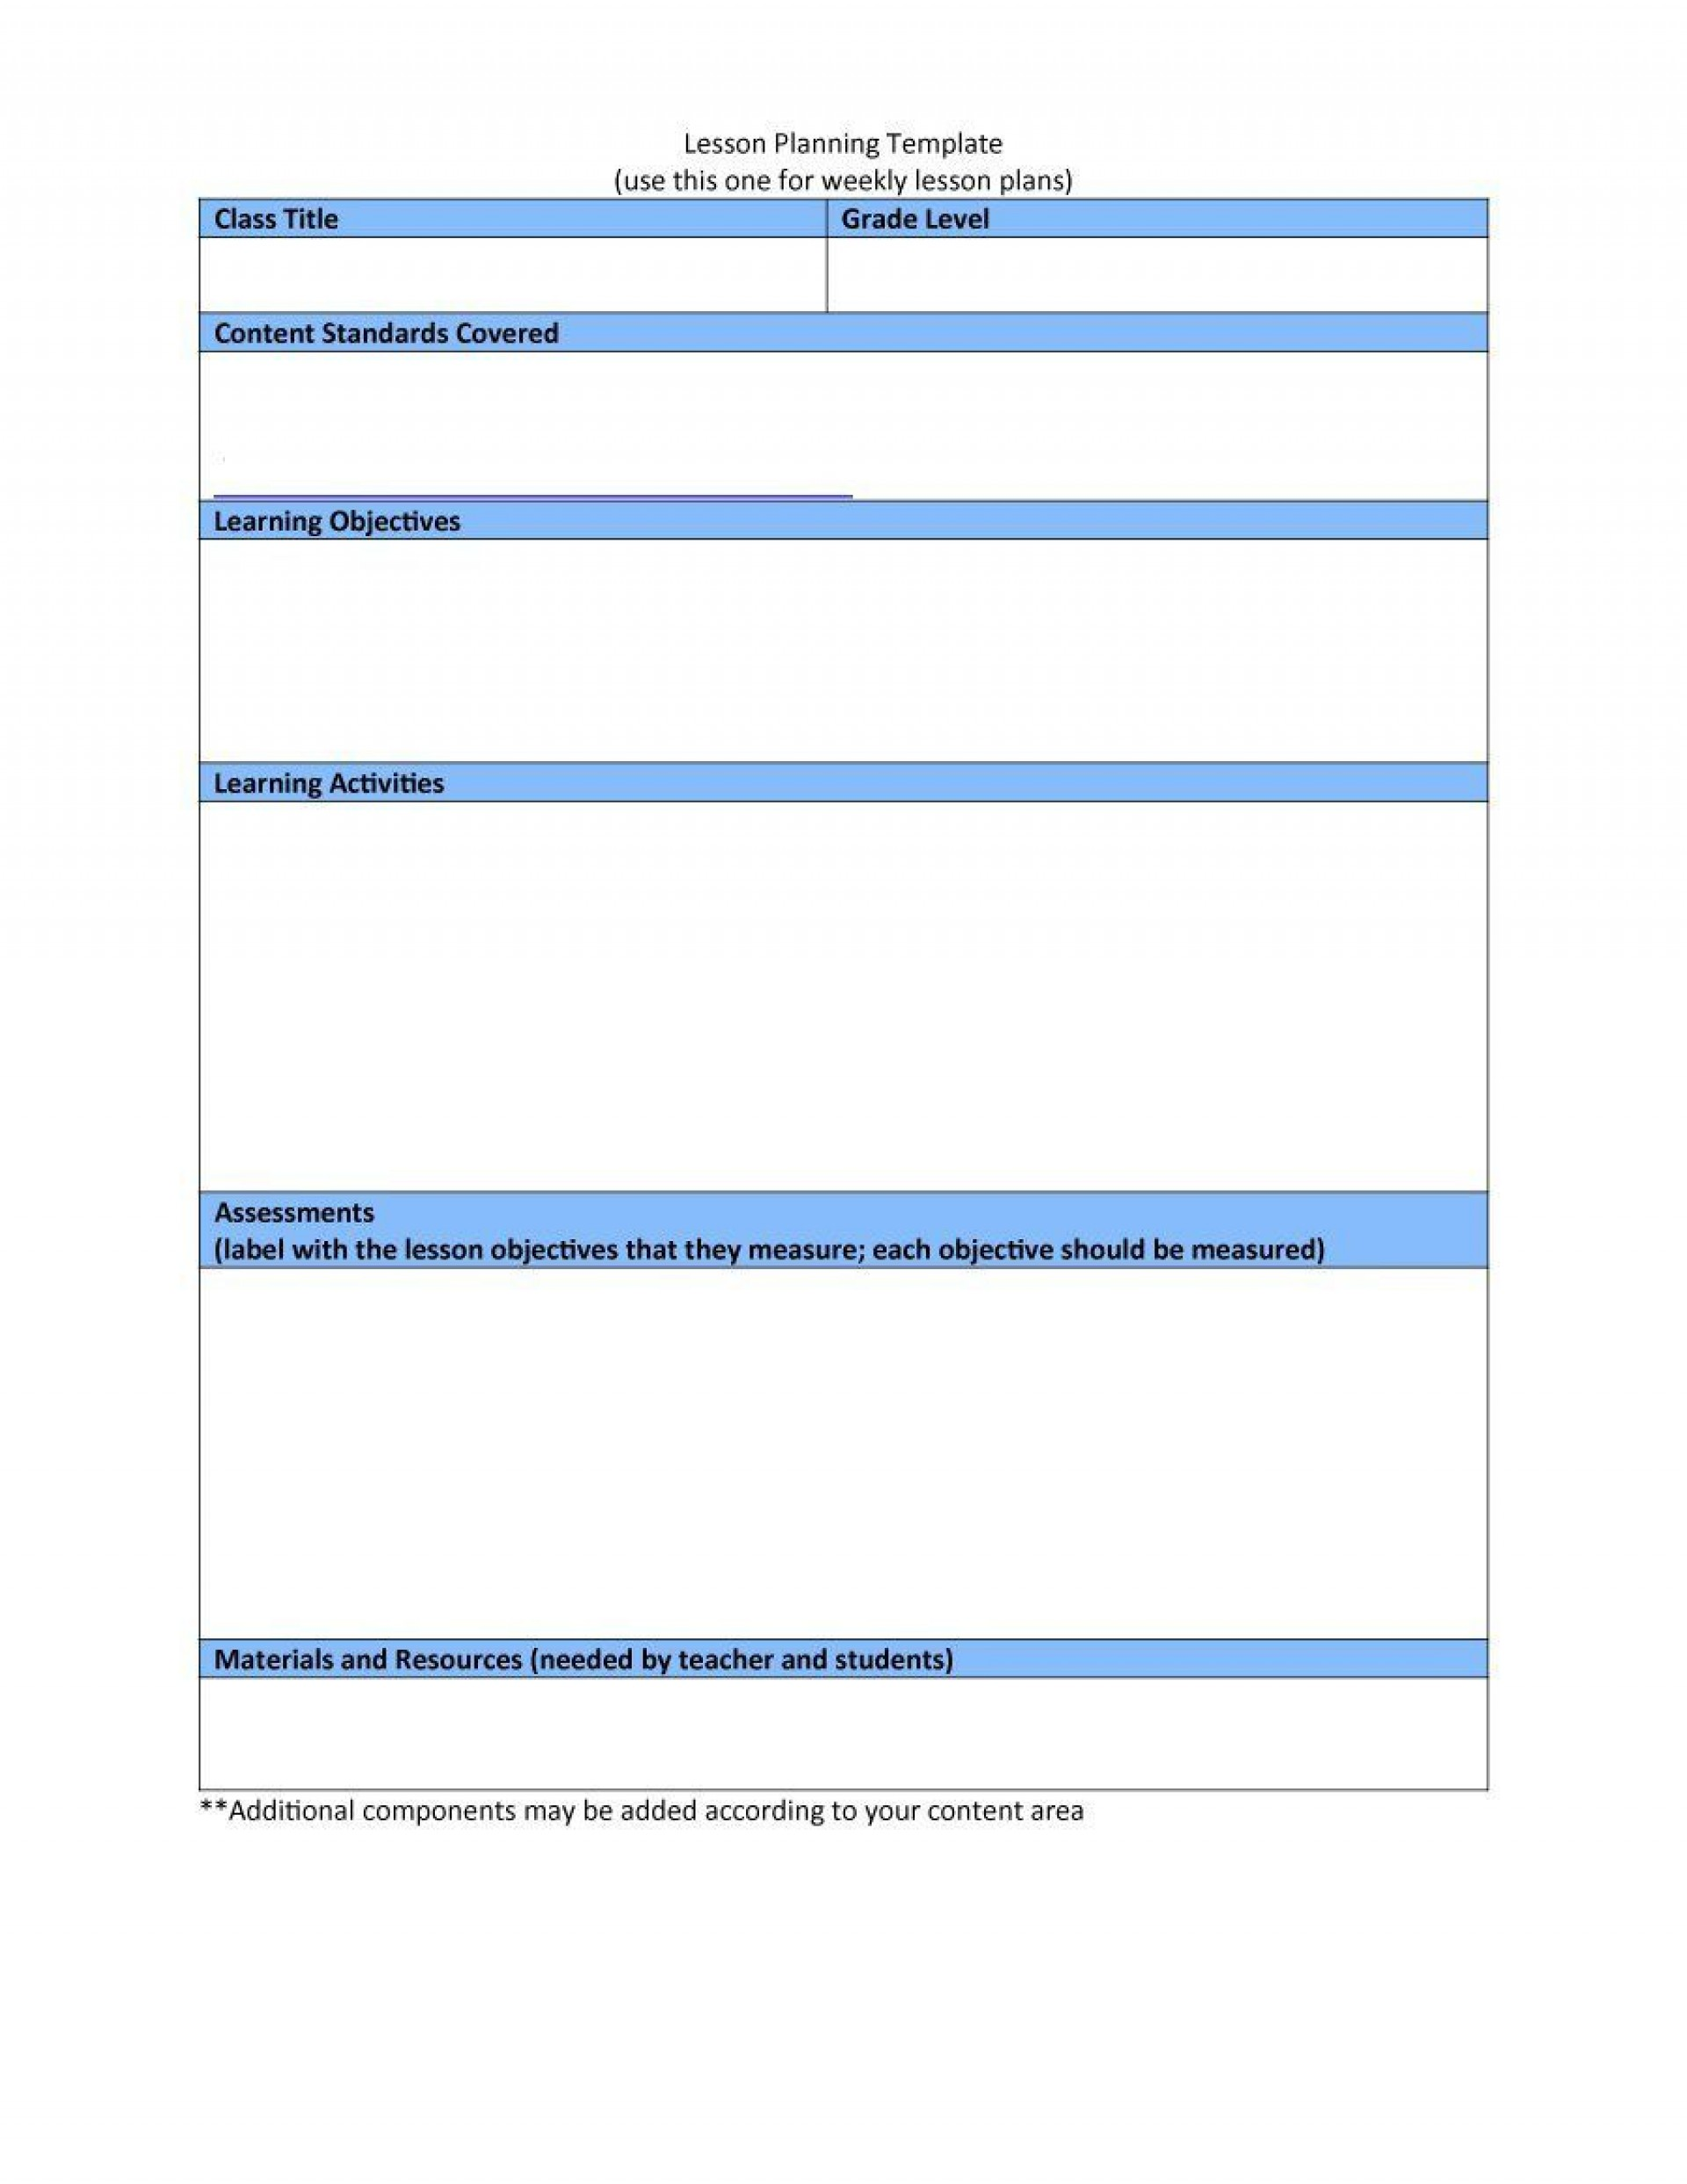 004 Stunning Downloadable Lesson Plan Template High Resolution  Printable Weekly Pdf Free Word1920